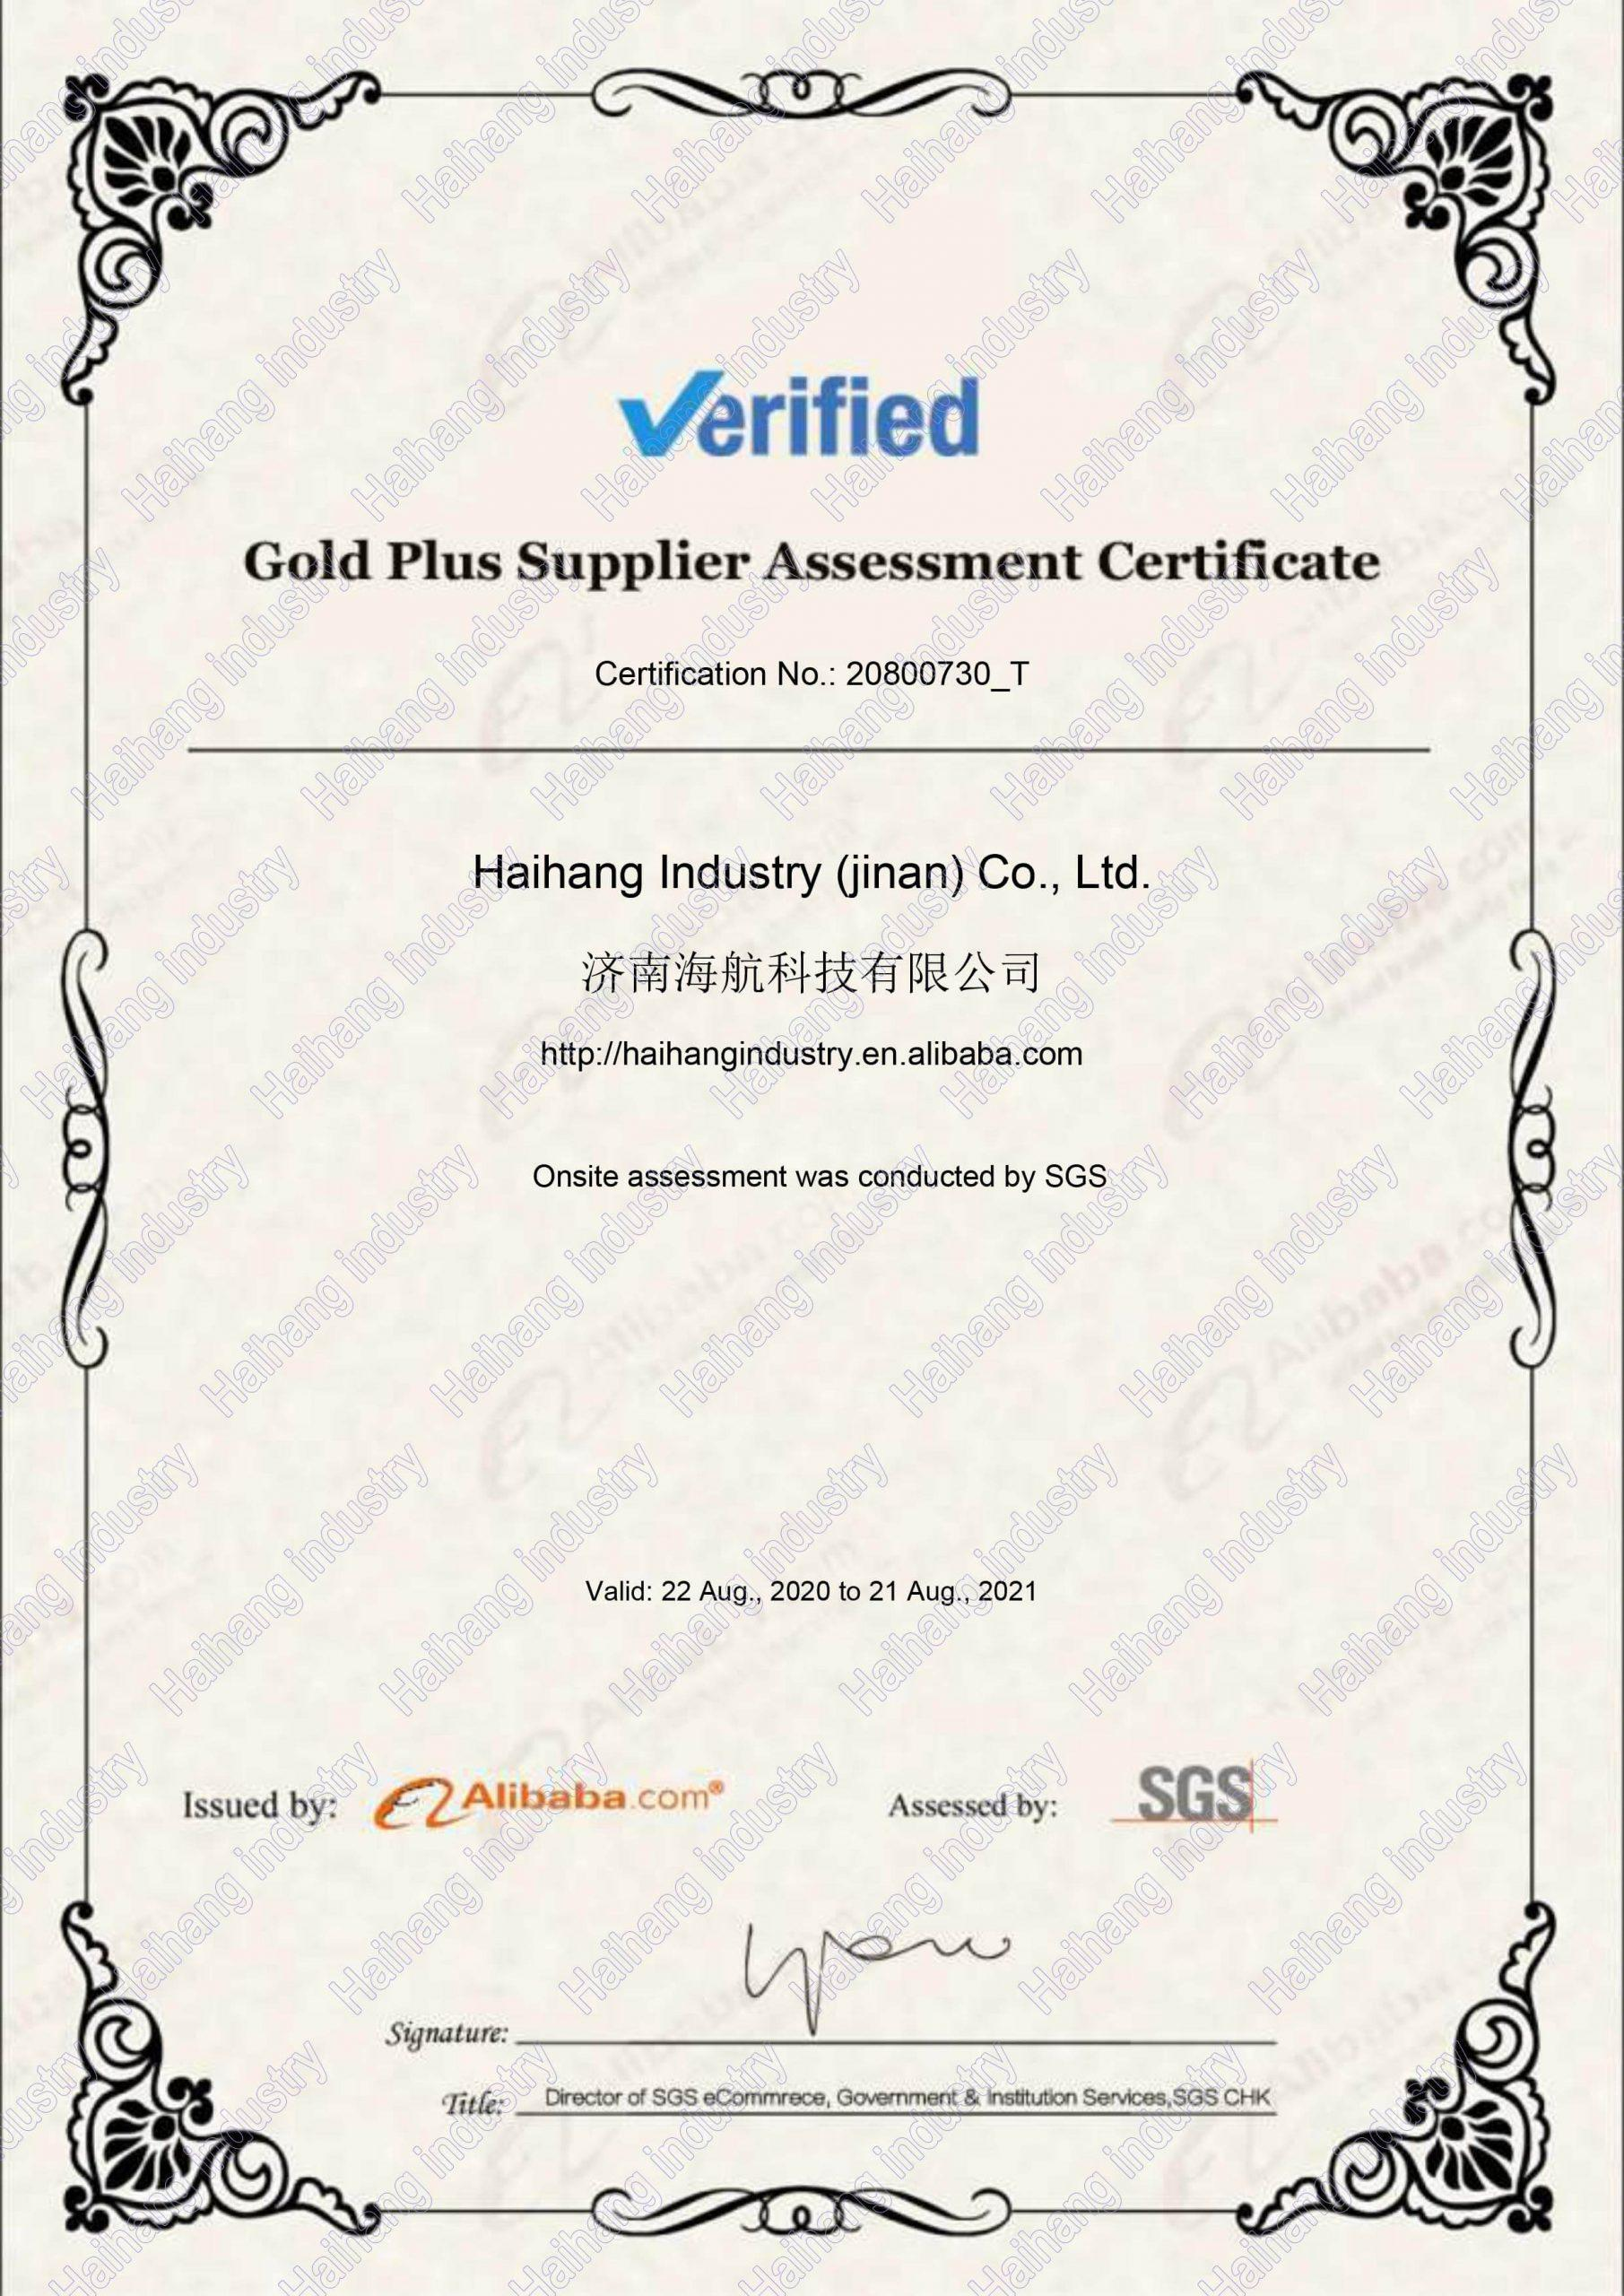 alibaba.com gold plus supplier assessment certificate